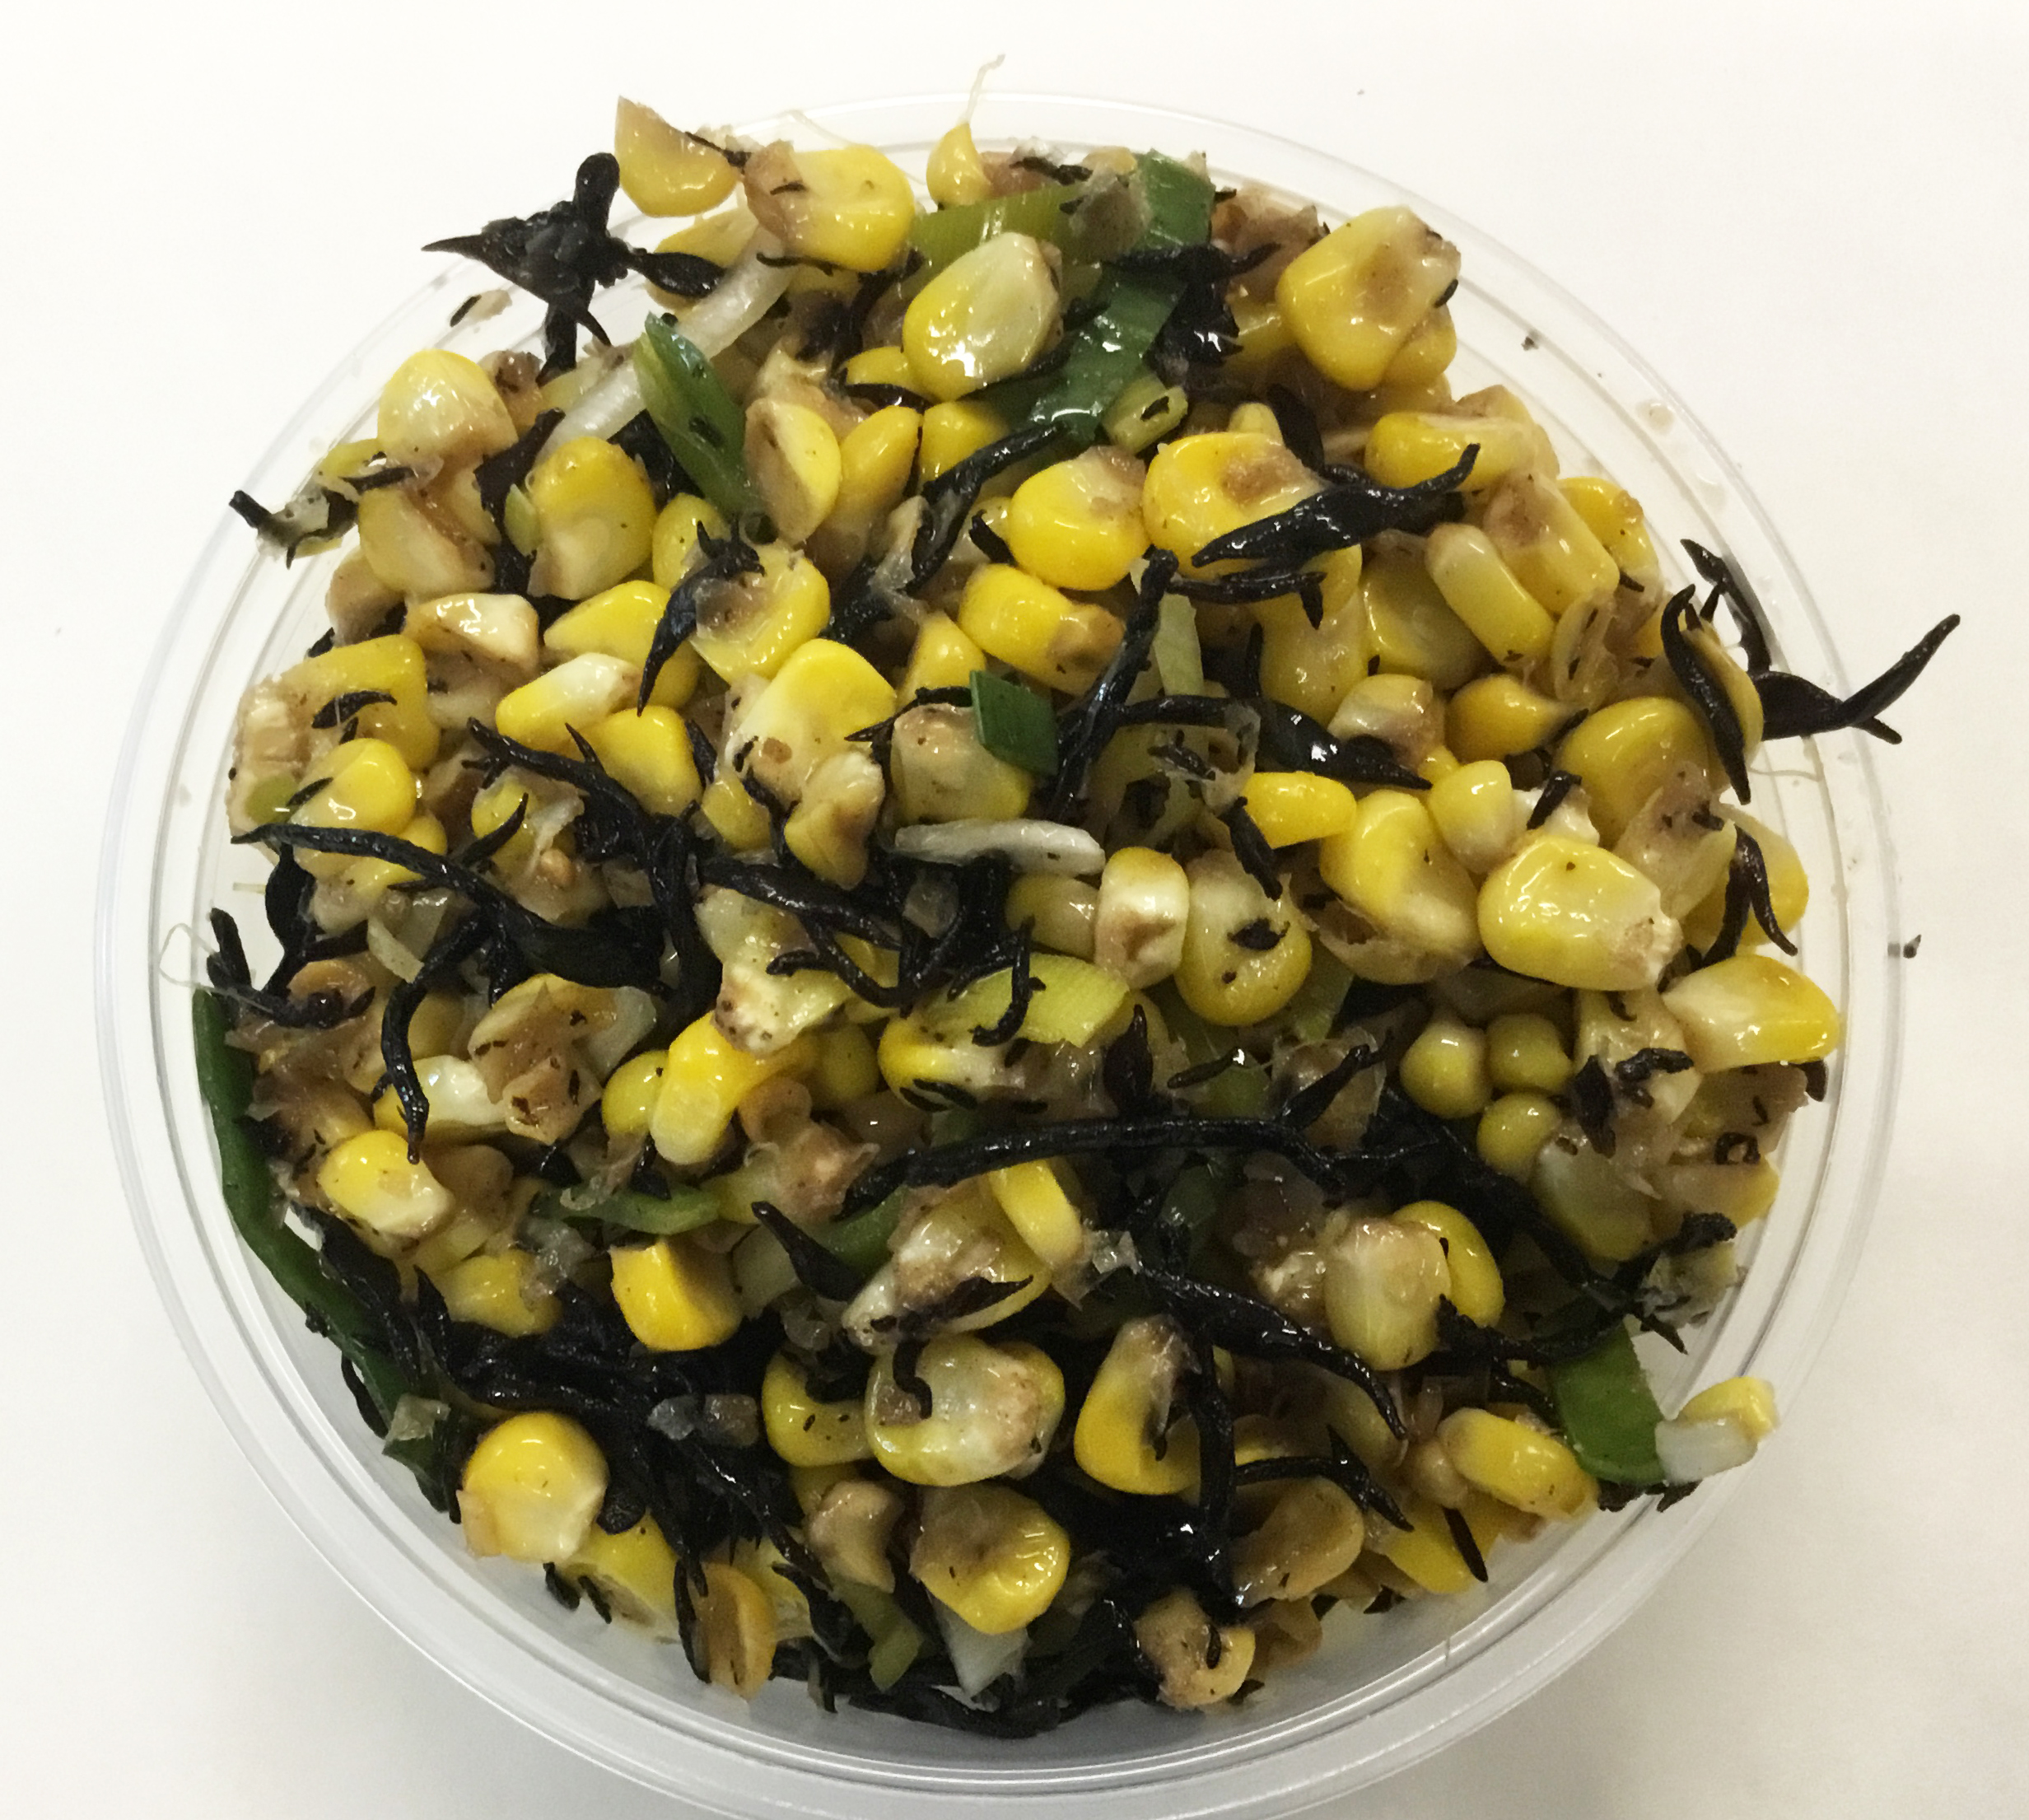 stir fried corn and me-hiziki seaweed